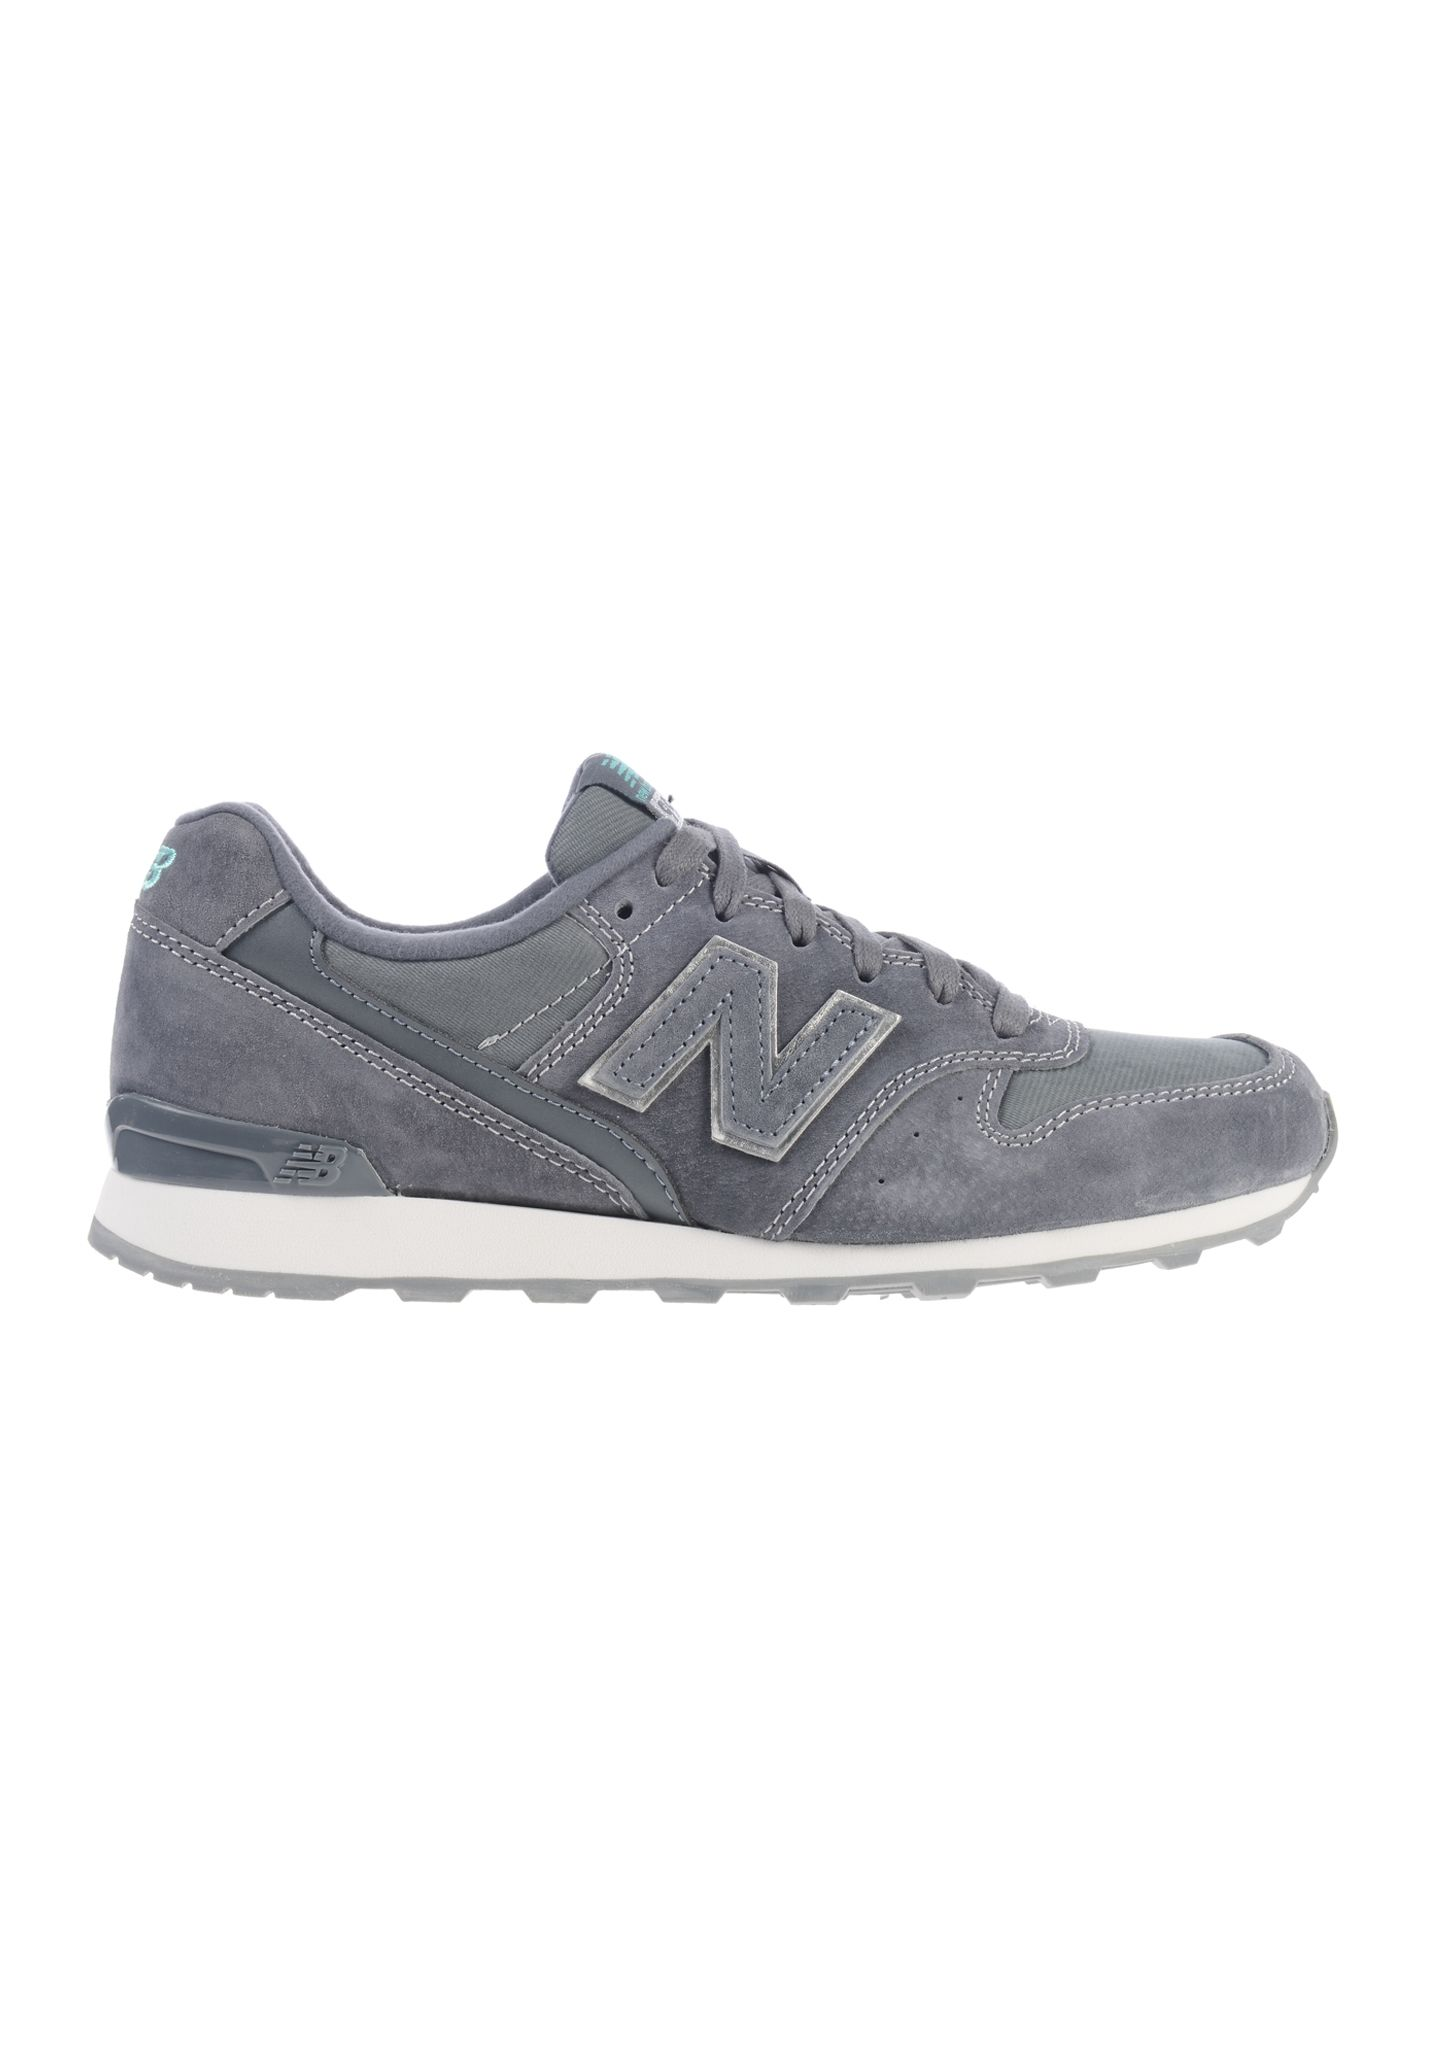 de51fd1fbd5f NEW BALANCE WR996 D - Baskets pour Femme - Gris - Planet Sports